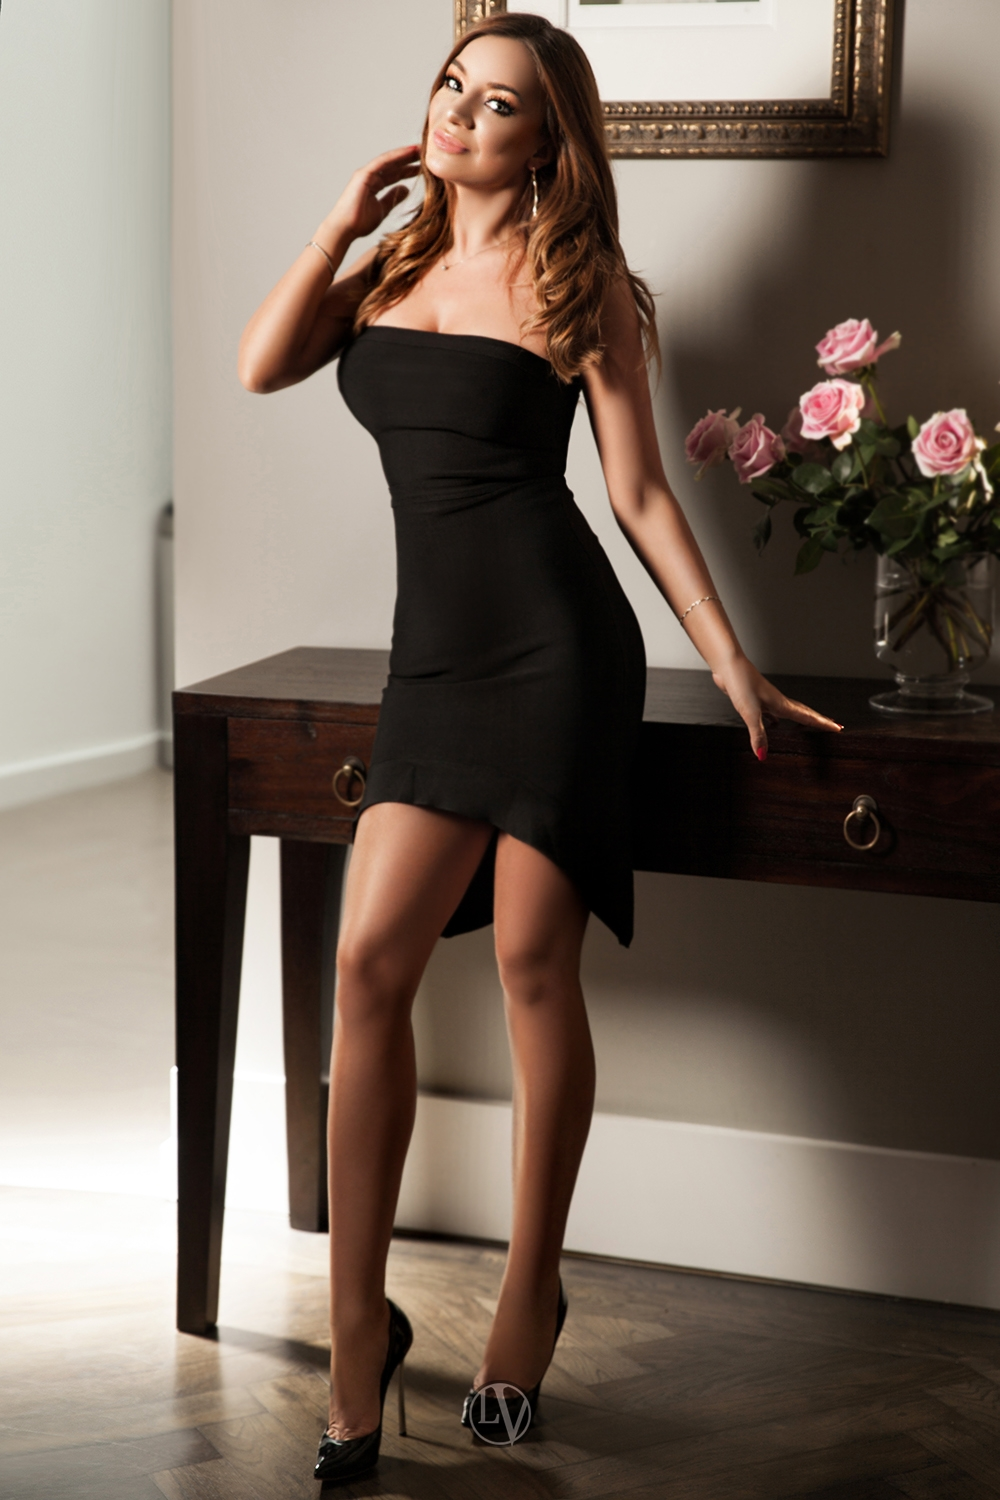 london escorts for adultwork, escort between baker street to london bridge